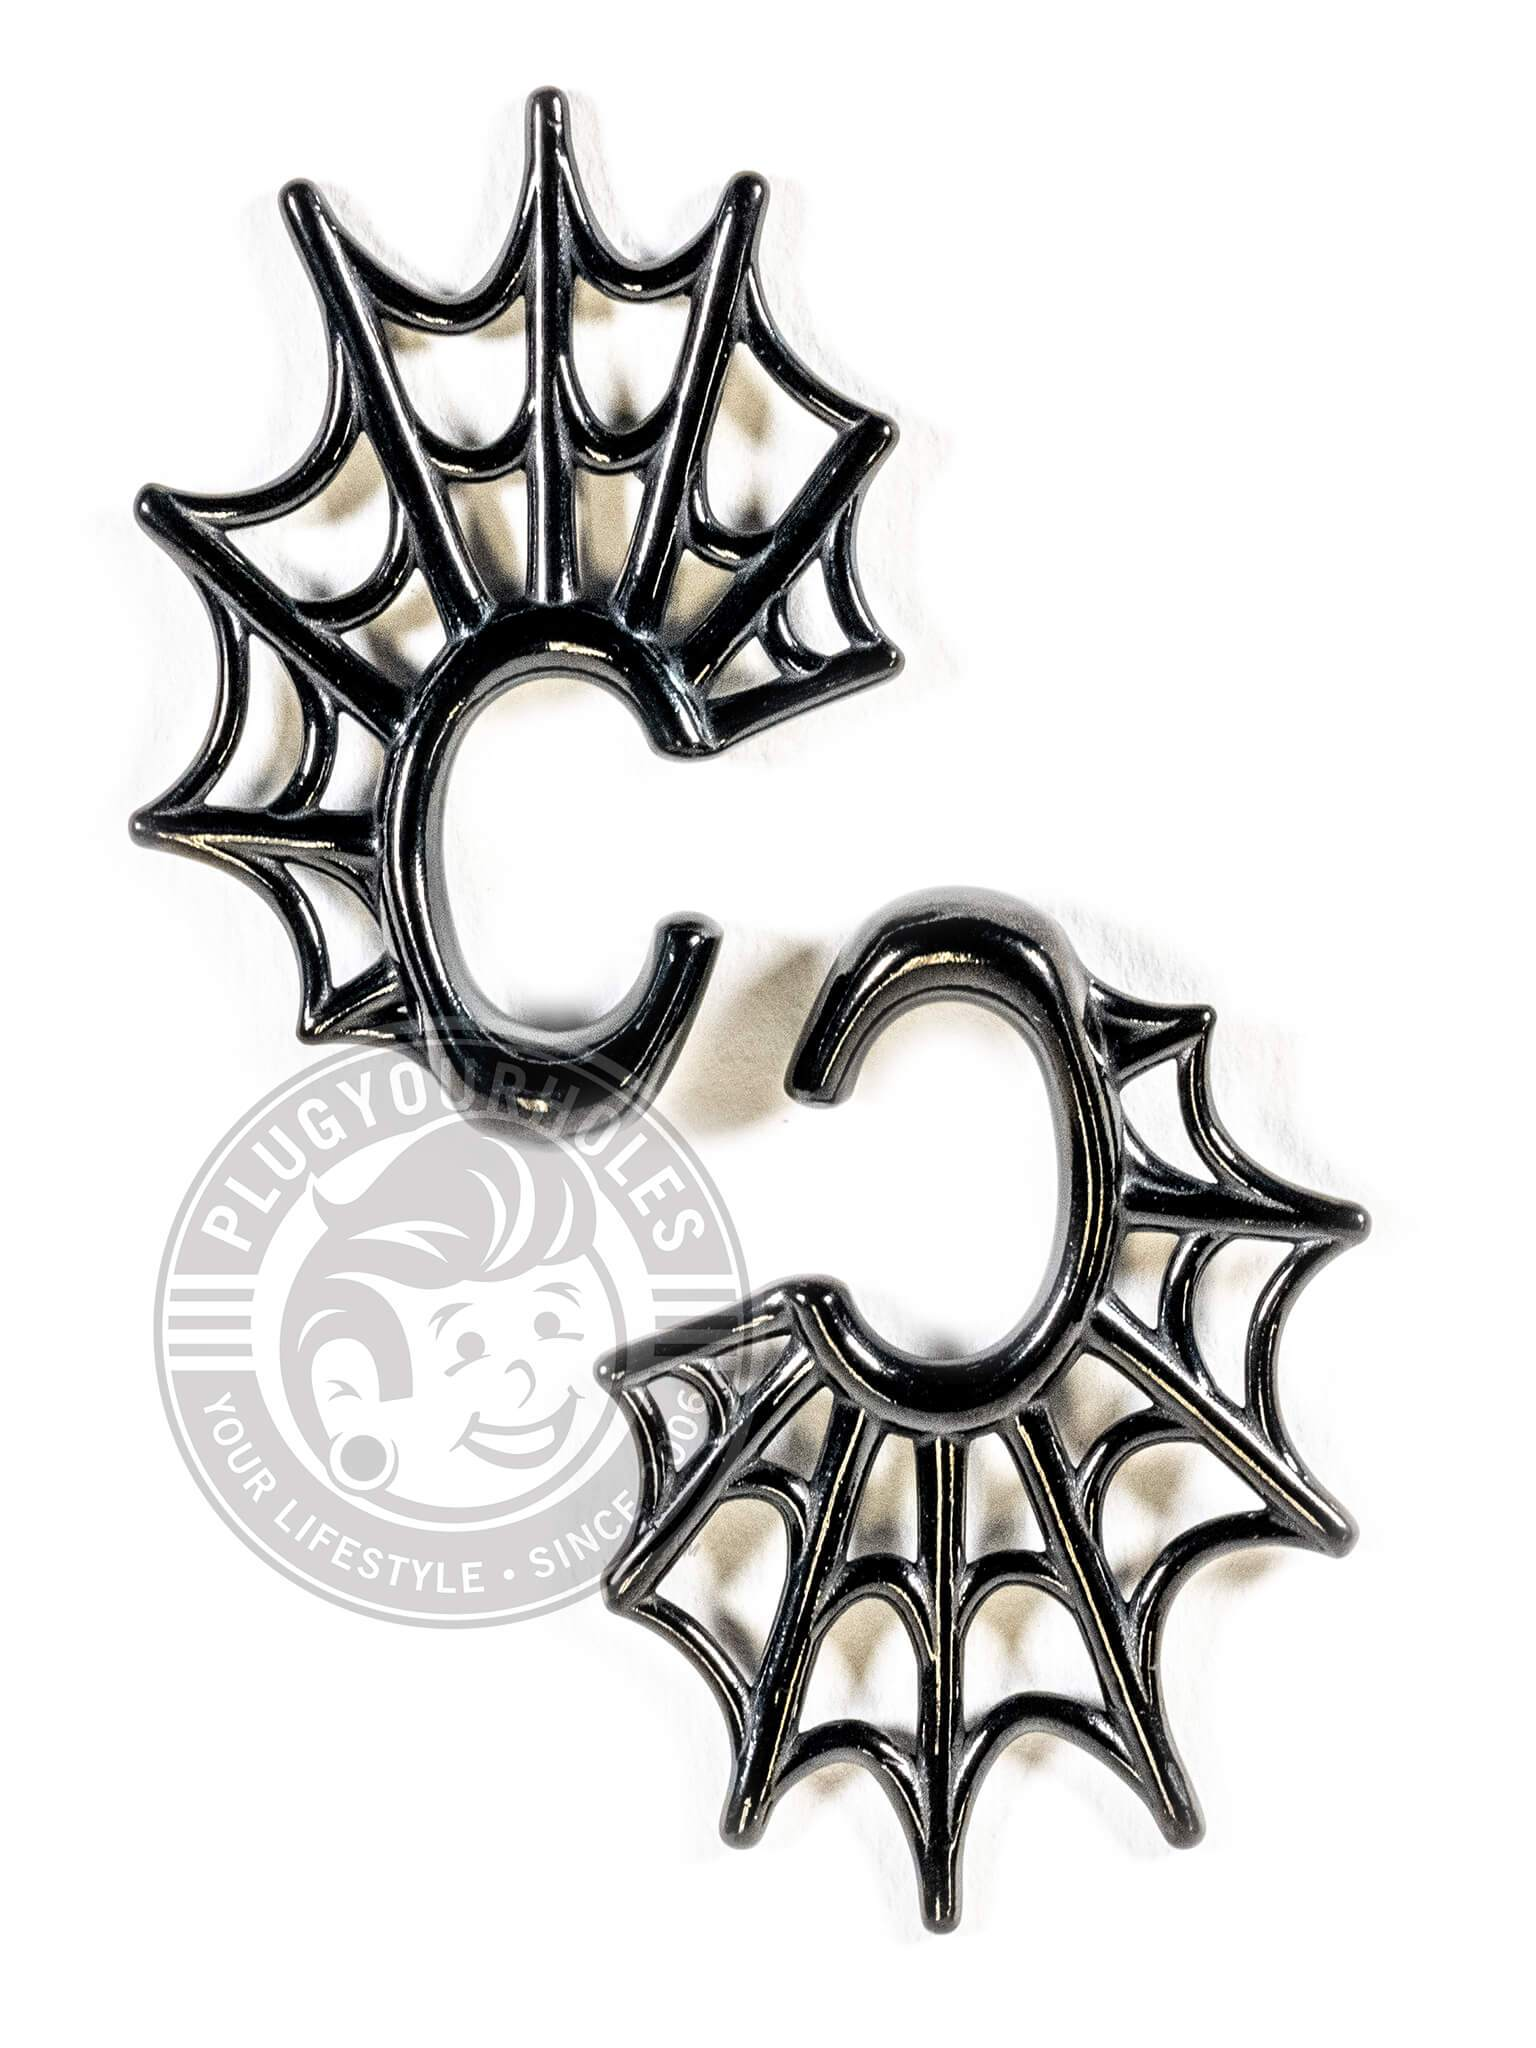 Black Spider Web Steel Hook Hangers